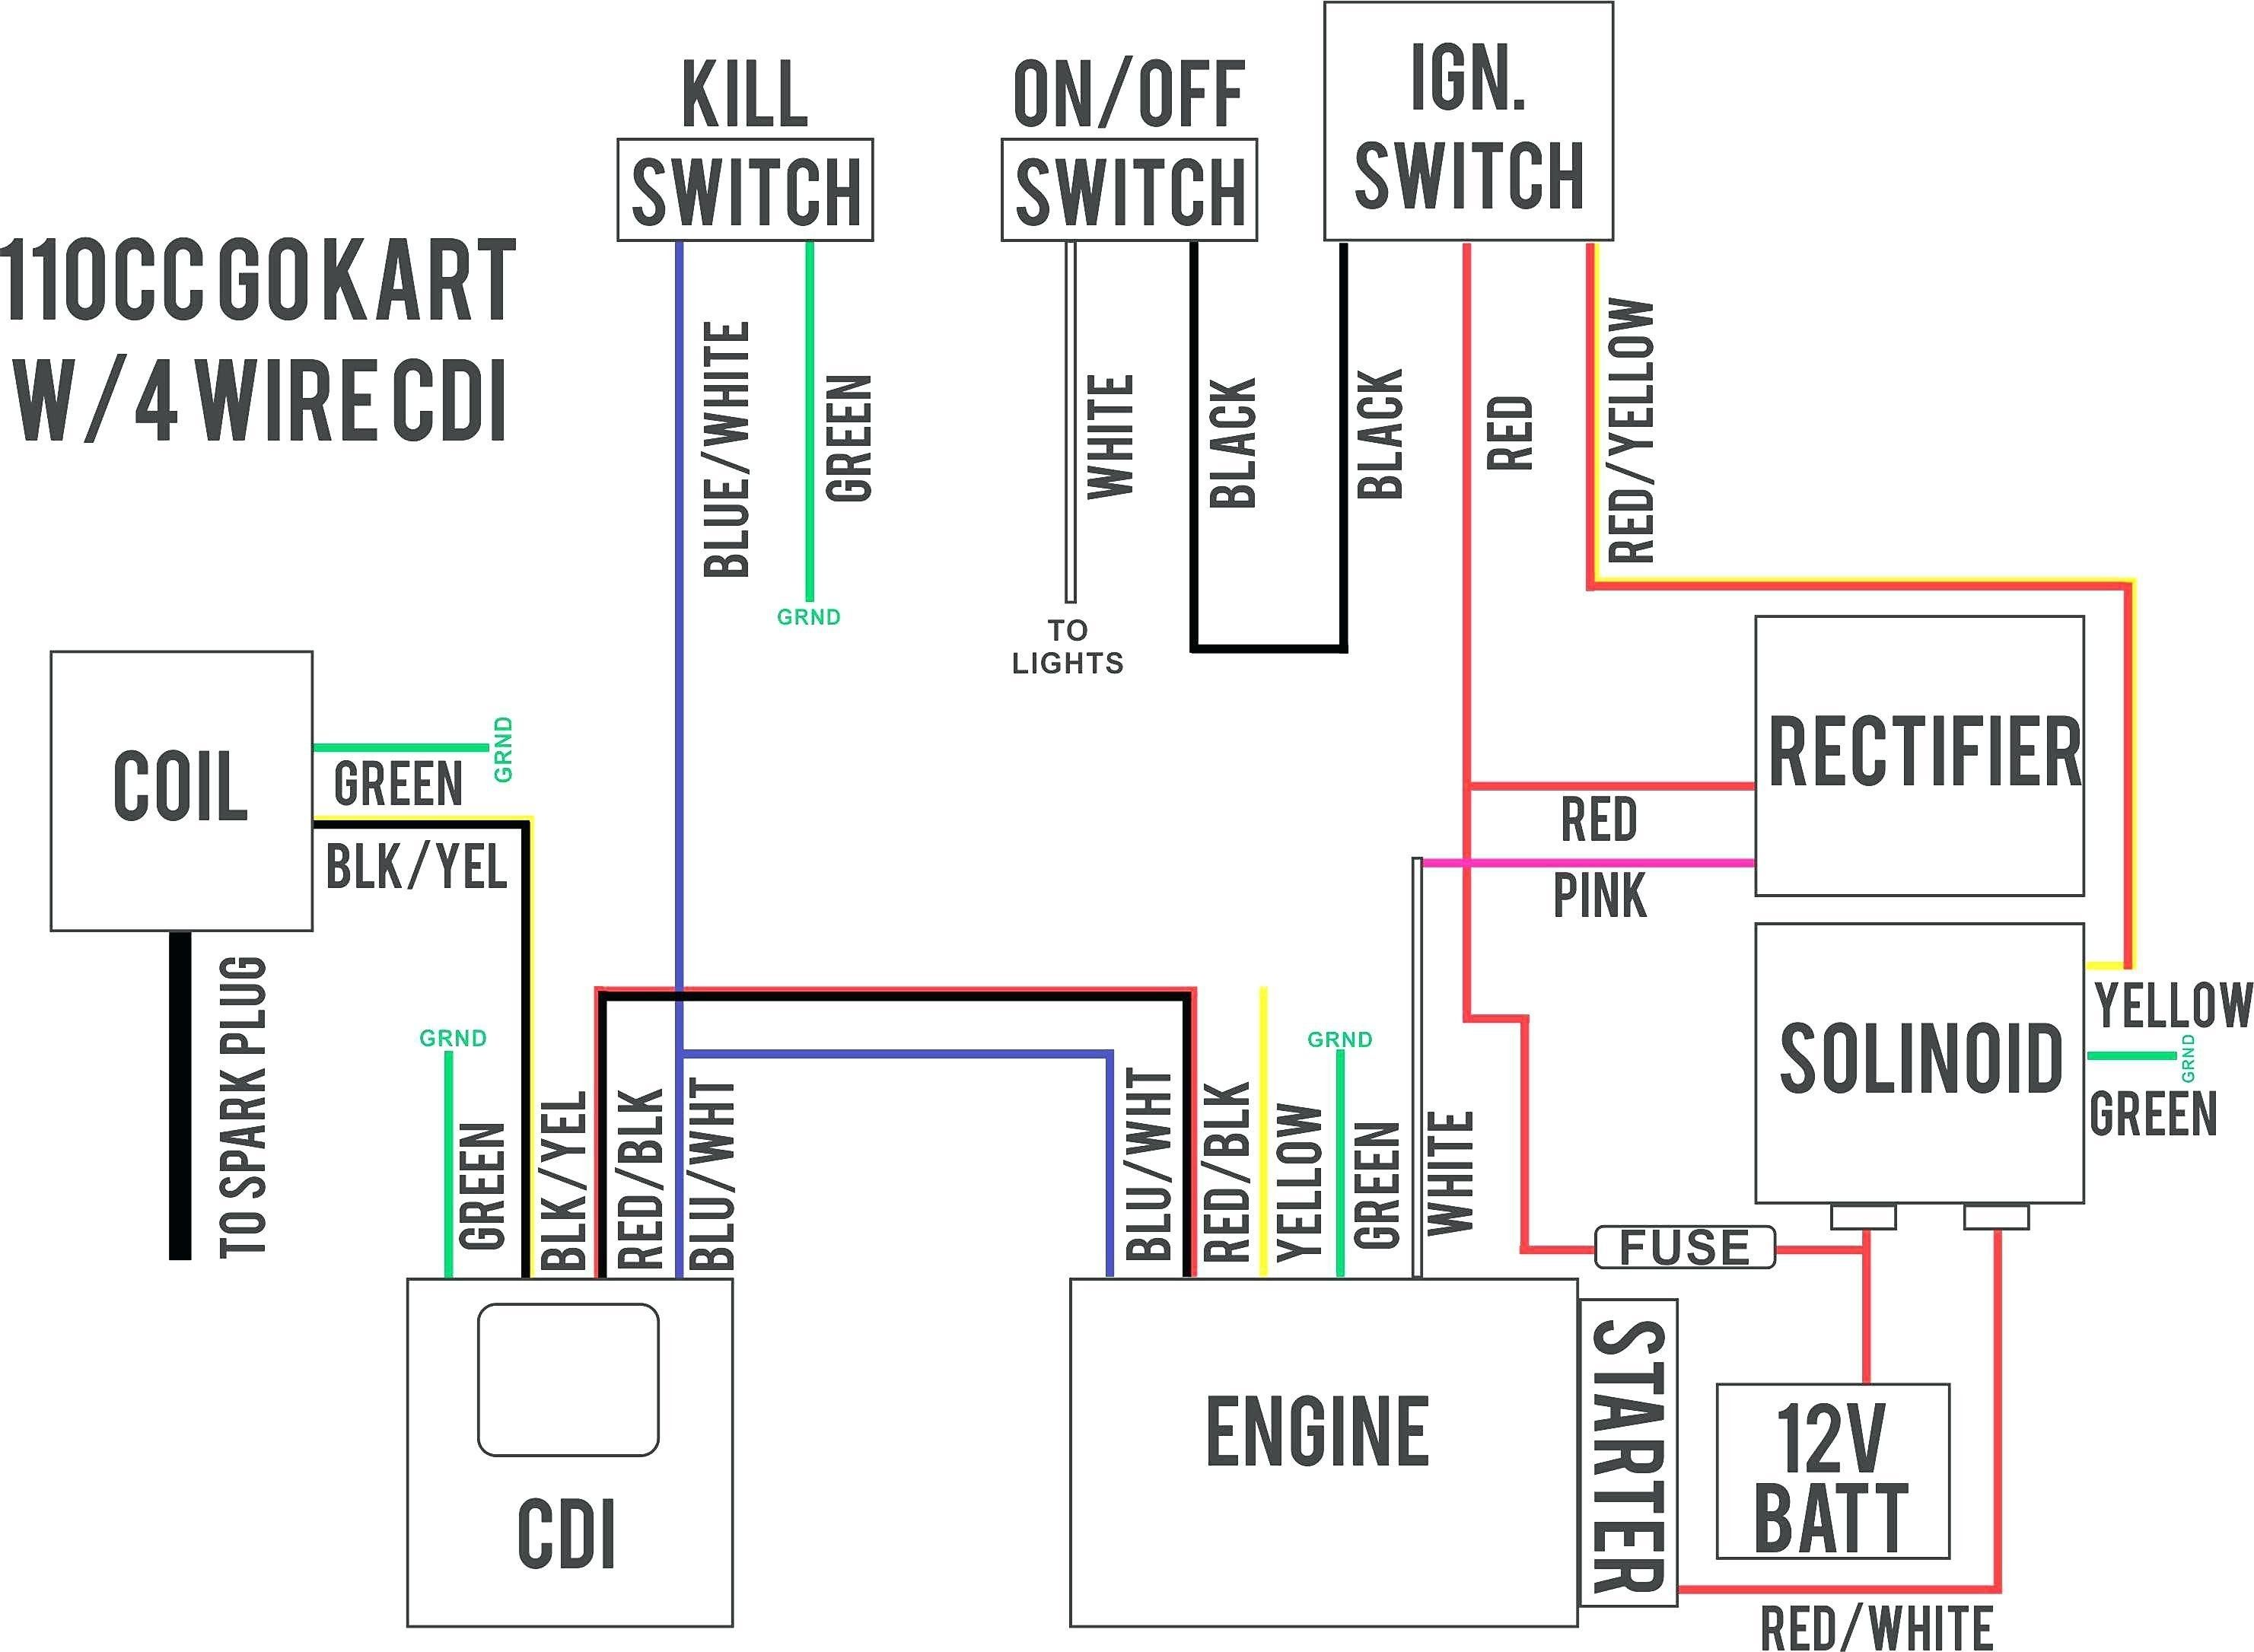 Gm Tps Wiring | Wiring Diagram  Trailblazer Accelerator Pedal Wiring Diagram on